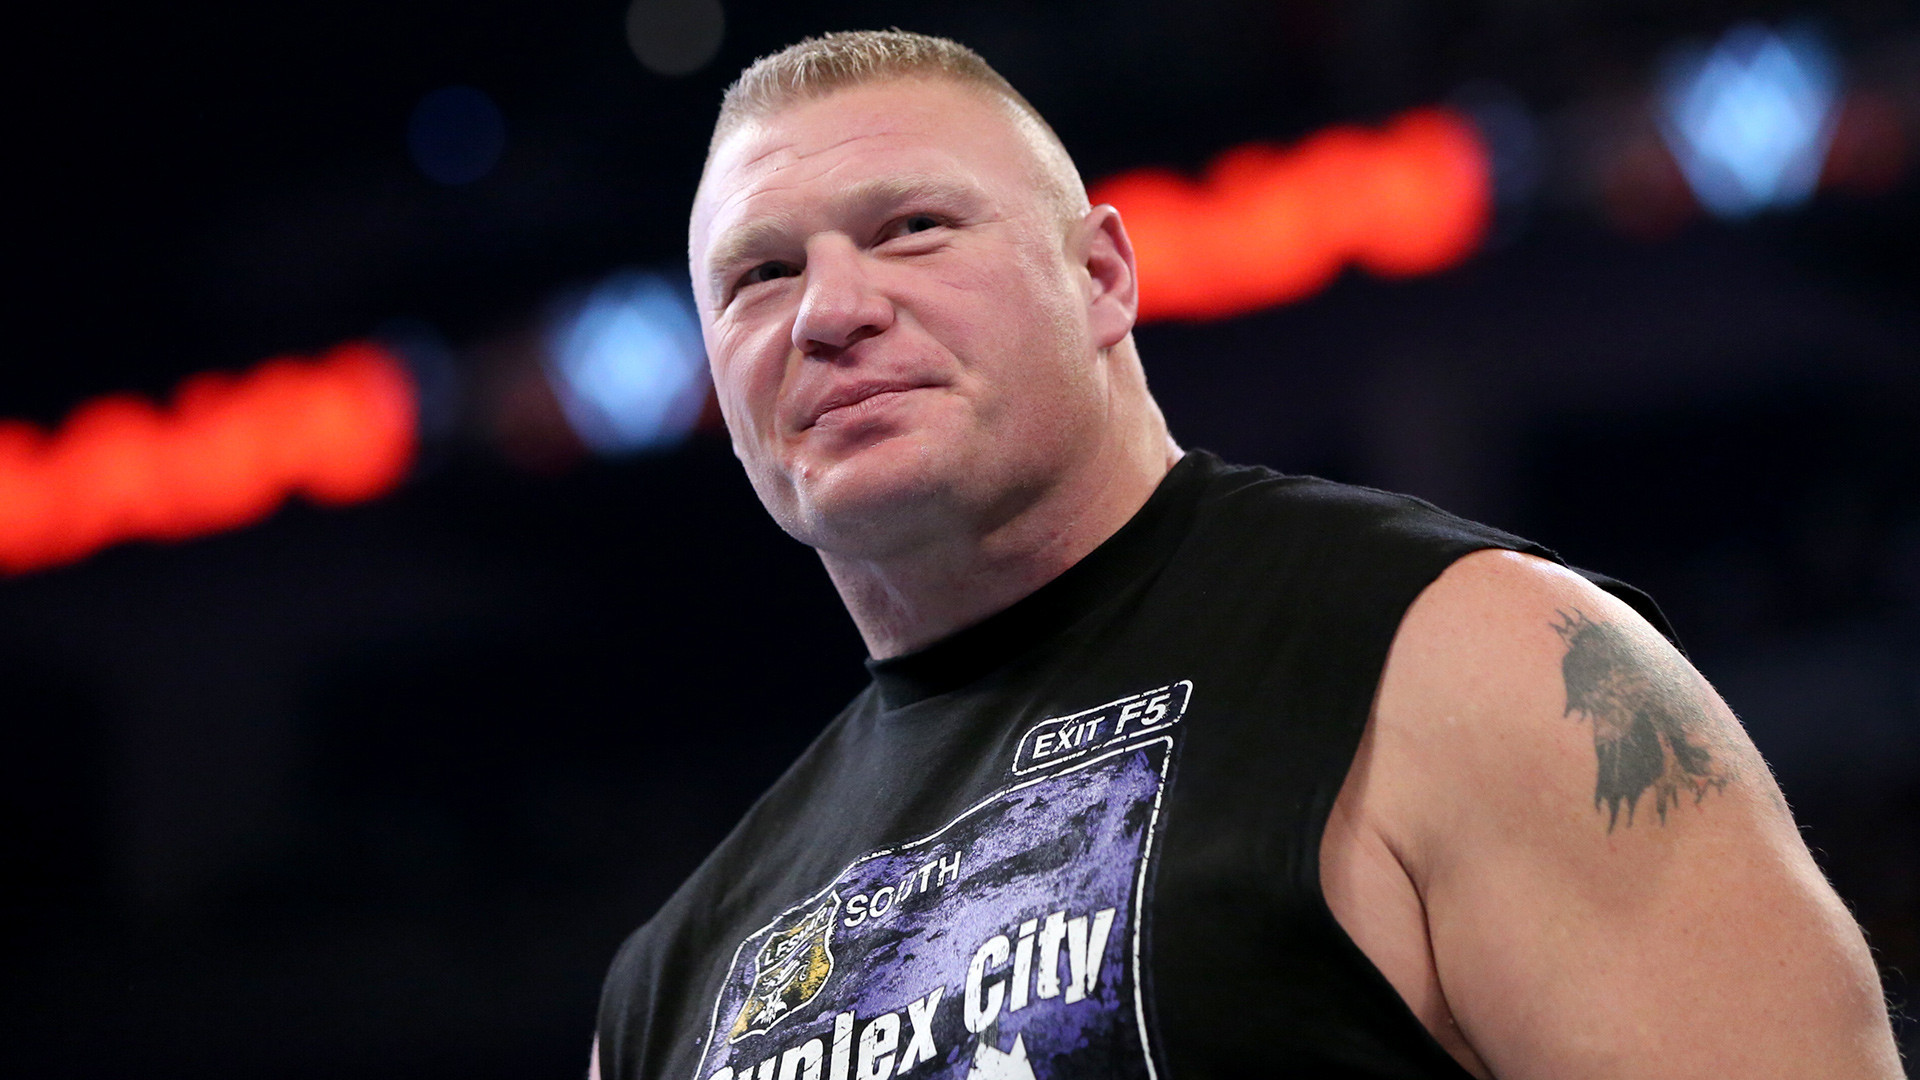 1920x1080 Wallpaper of Brock Lesnar - WWE Superstars, WWE Wallpapers, WWE PPV's